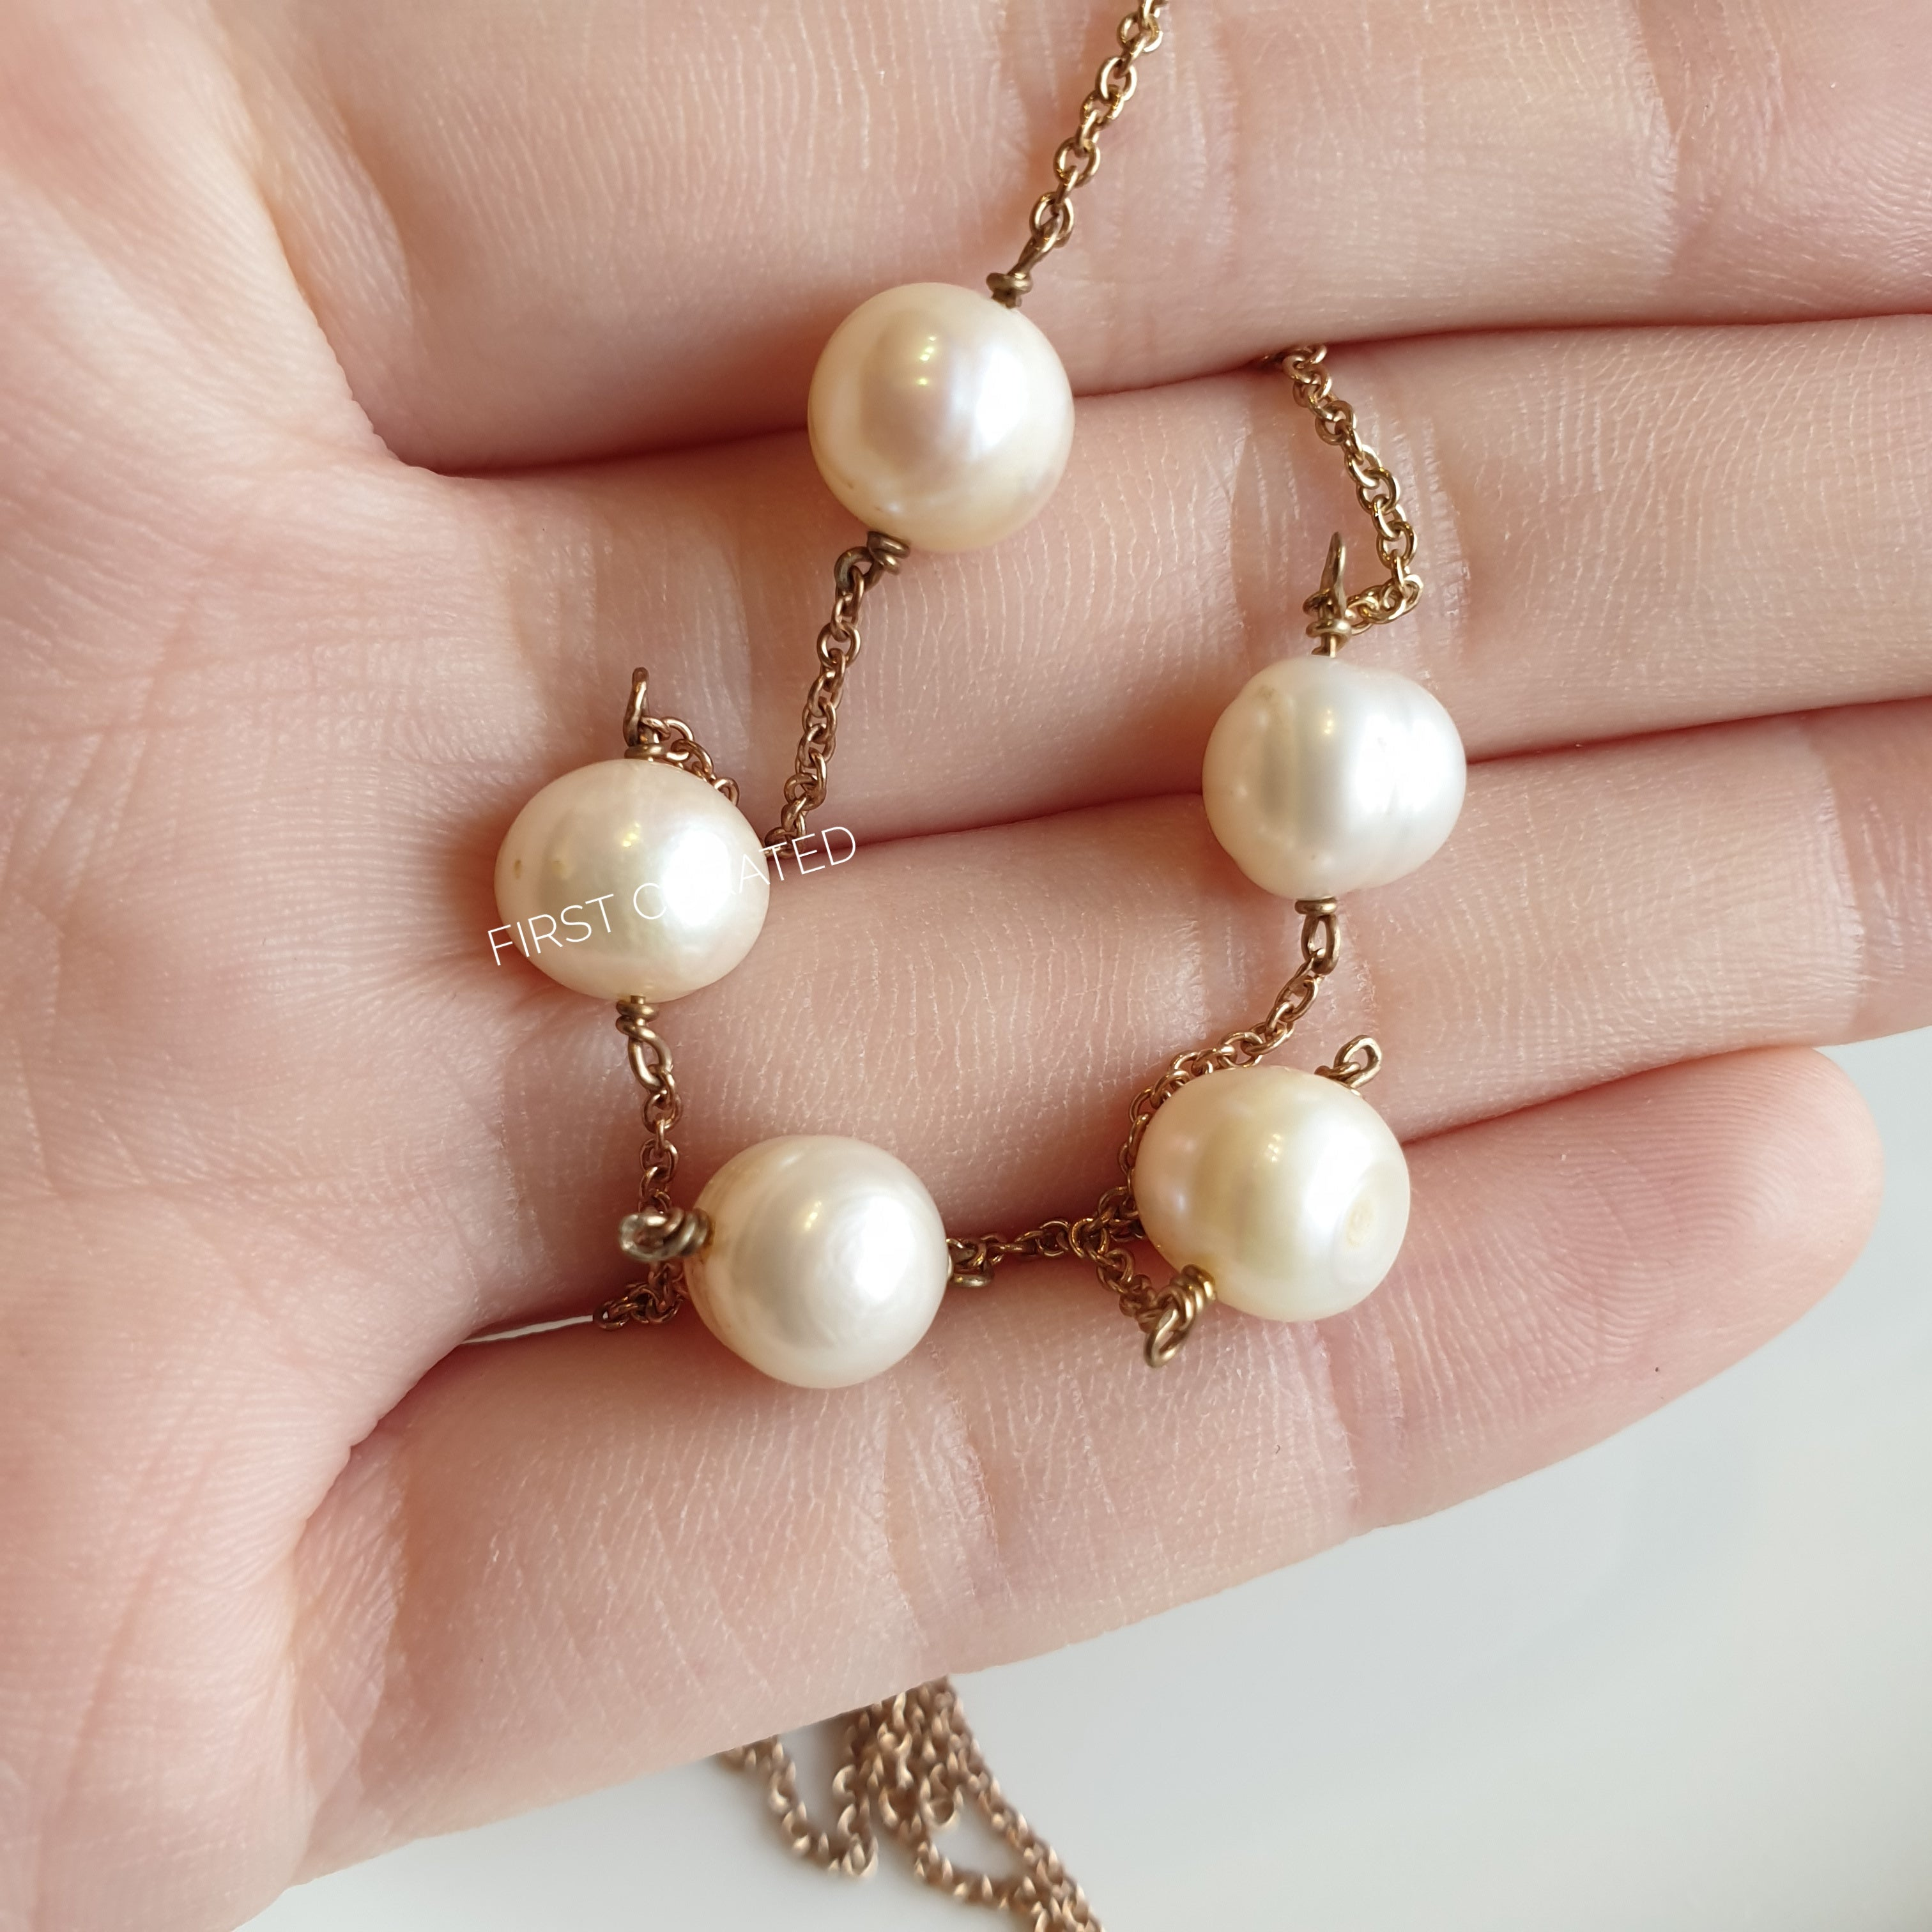 The Louise: Rose Gold-toned Necklace with Five Freshwater Pearls